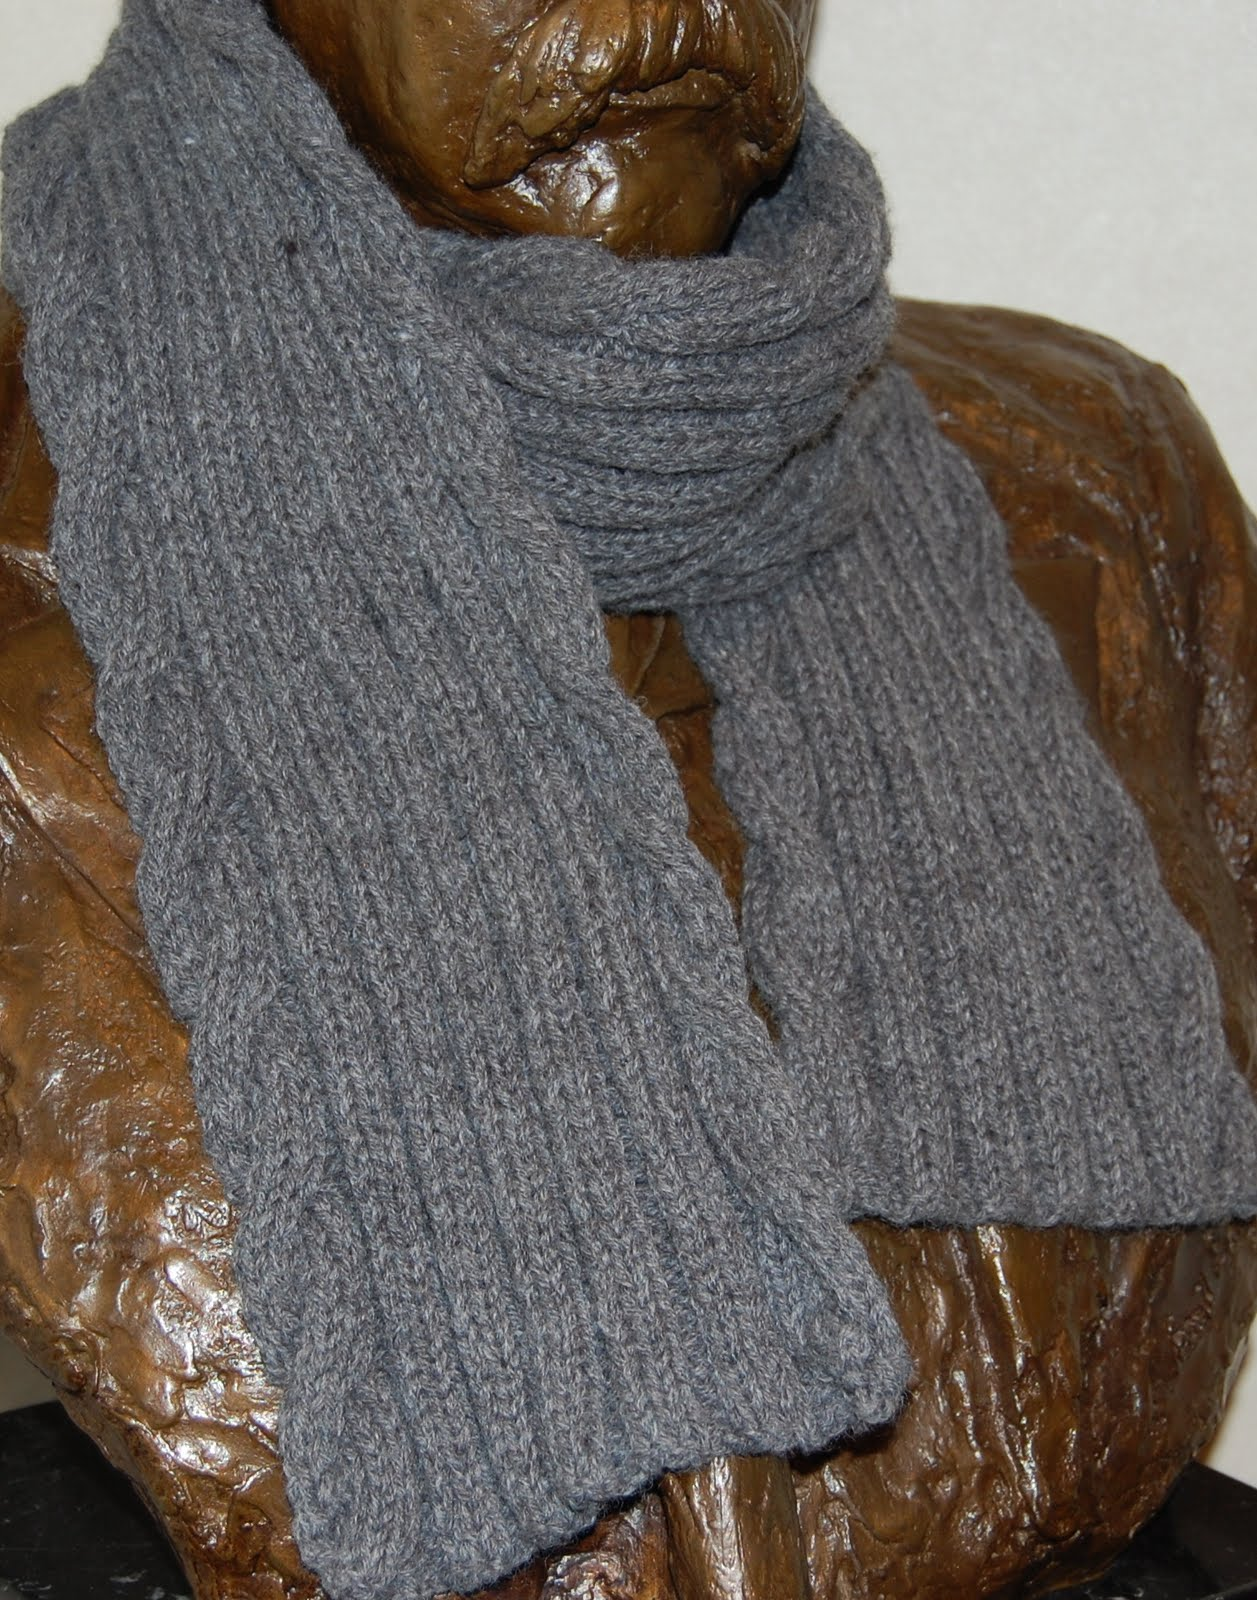 Loose Ends: Knitted Ancestors: 2011/07